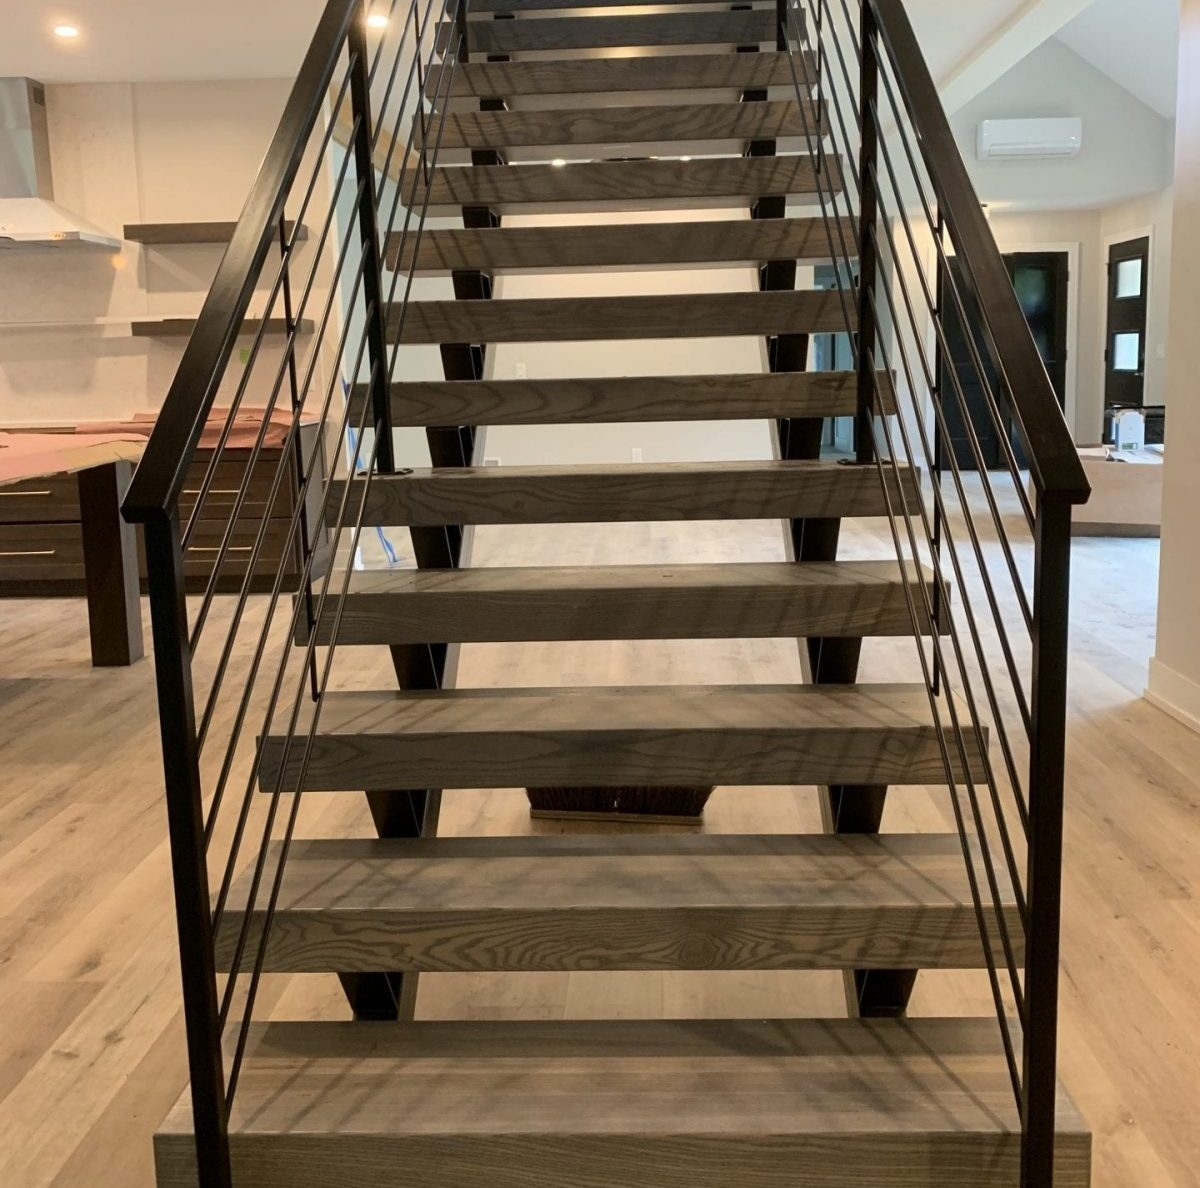 Double Stringer Floating Stairs Great Lakes Metal Fabrication   Metal And Wood Stairs   Straight   Diy   Residential   Rustic   Stair Railing